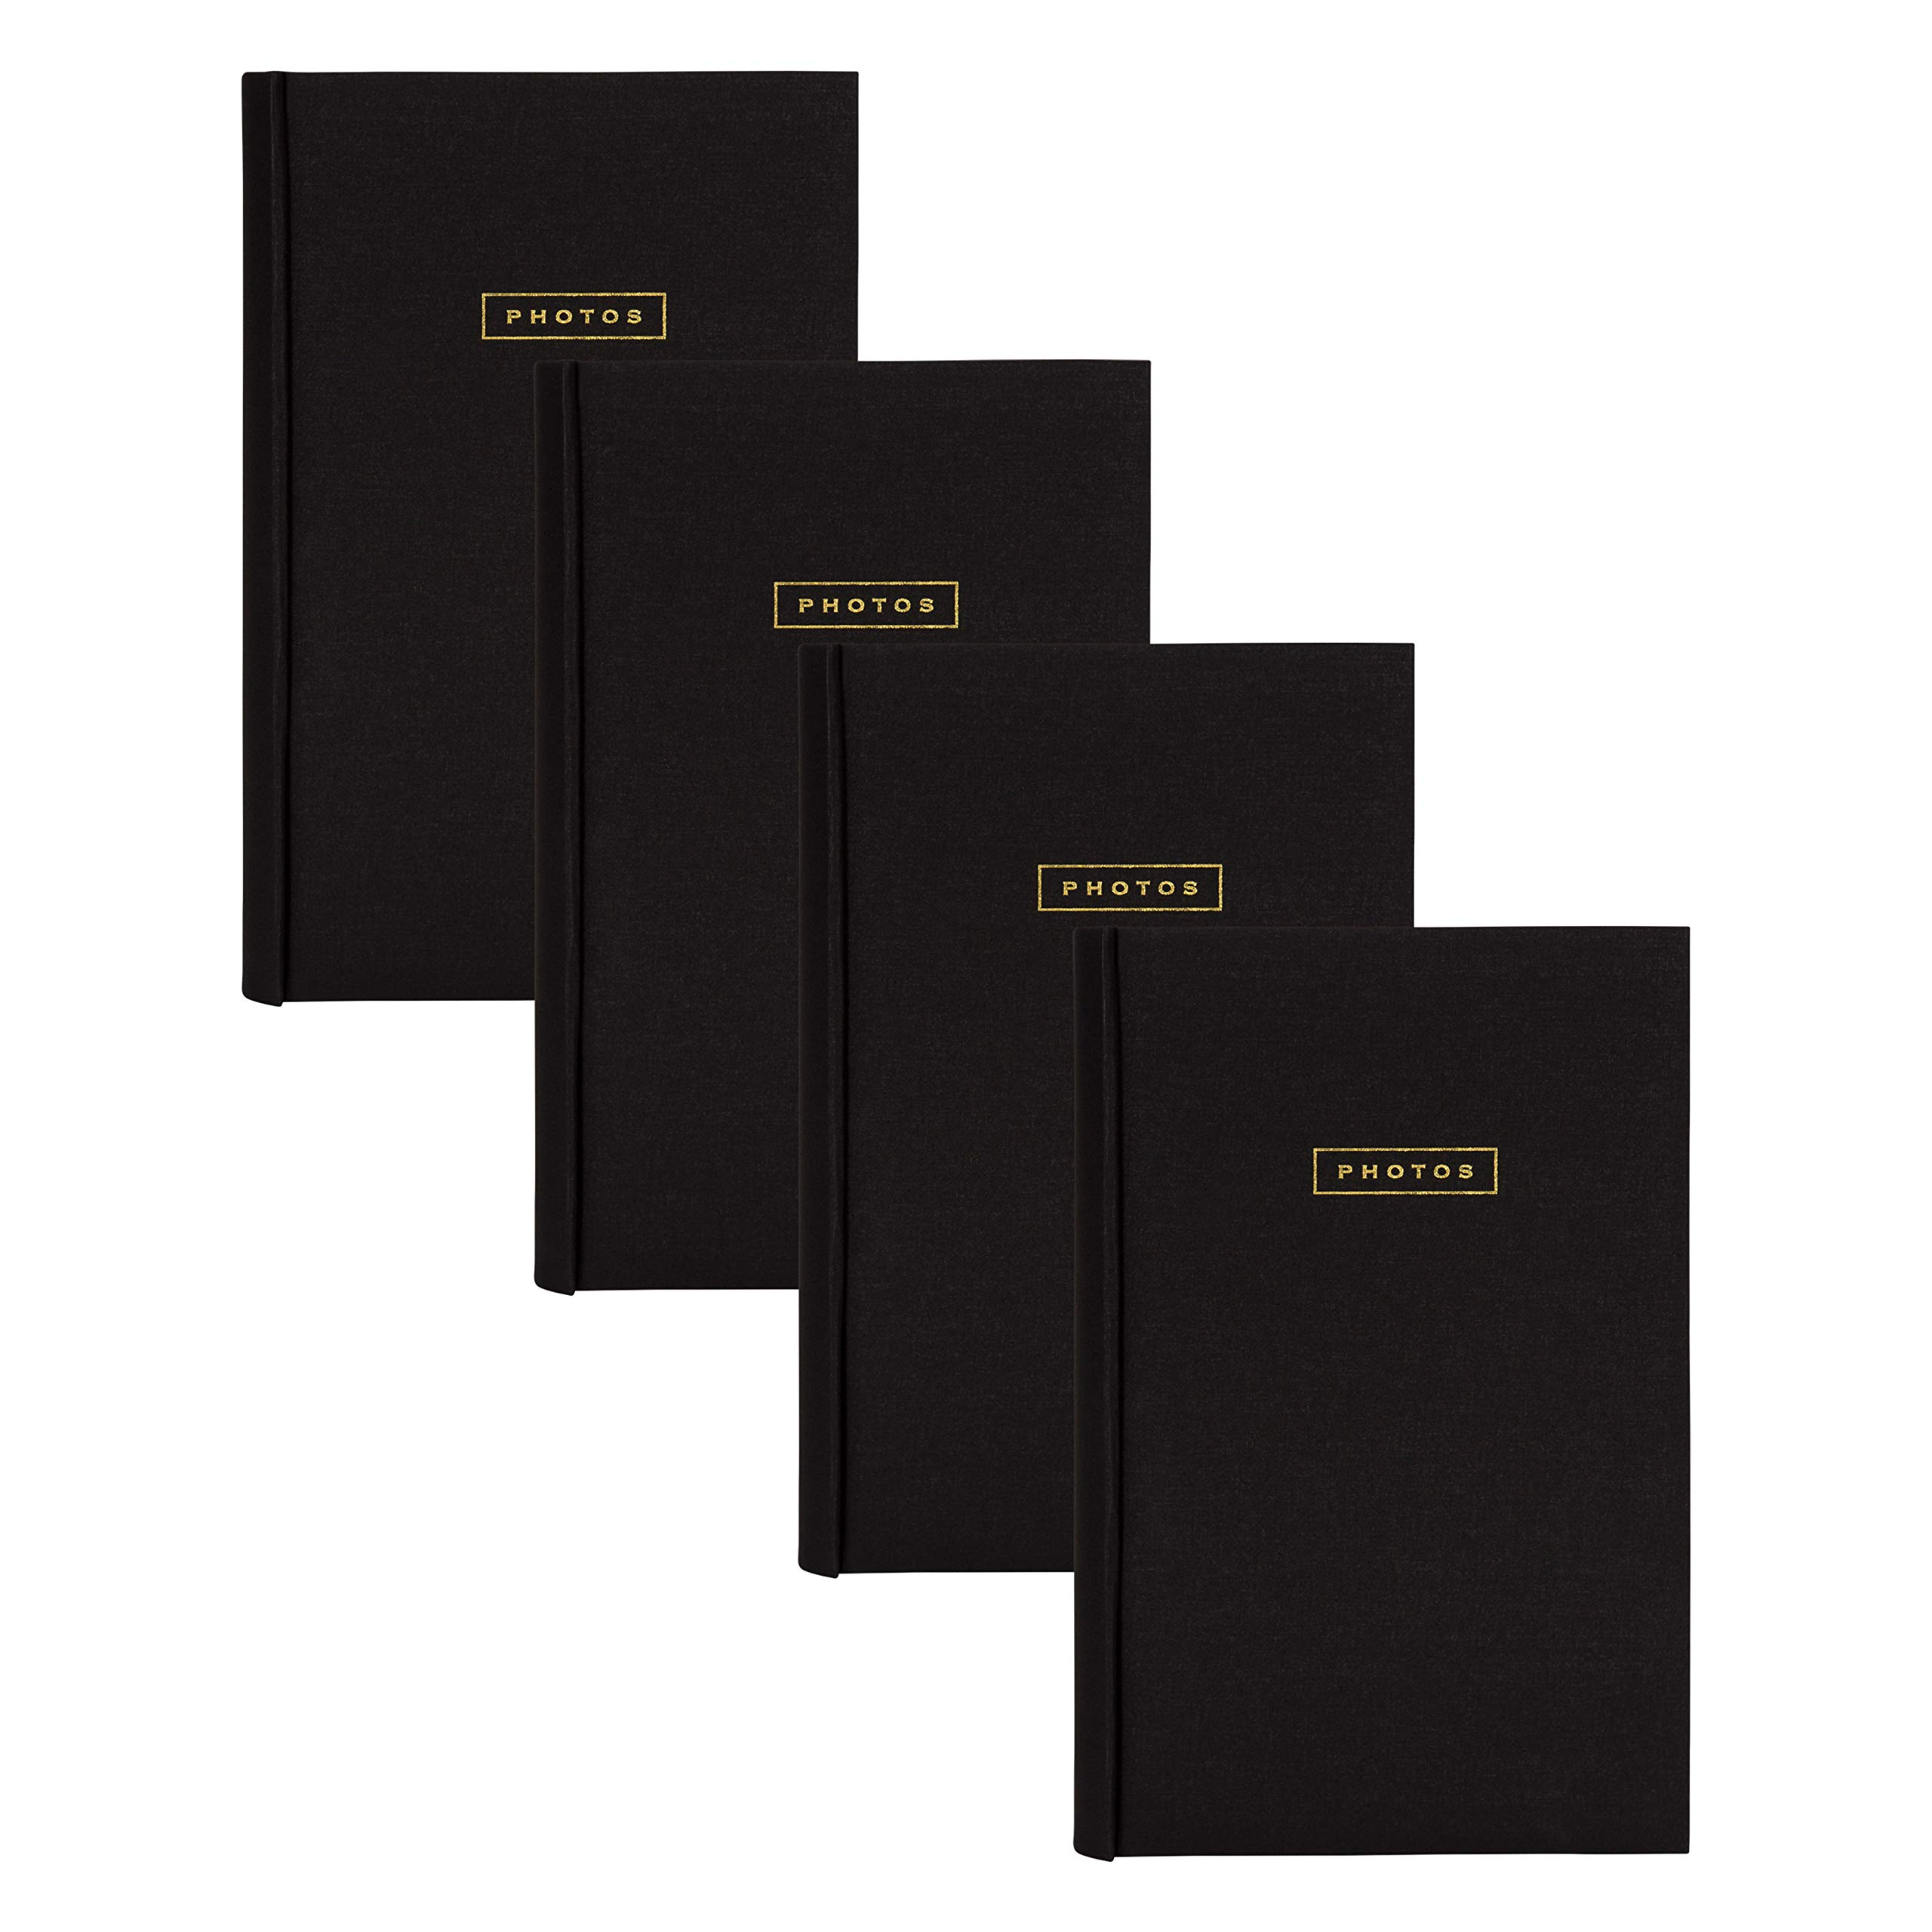 DesignOvation Black Fabric Deluxe Photo Album with Front Cover Sentiment Photos in Gold Block Letters - Holds 300 4x6 Photos, Set of 4